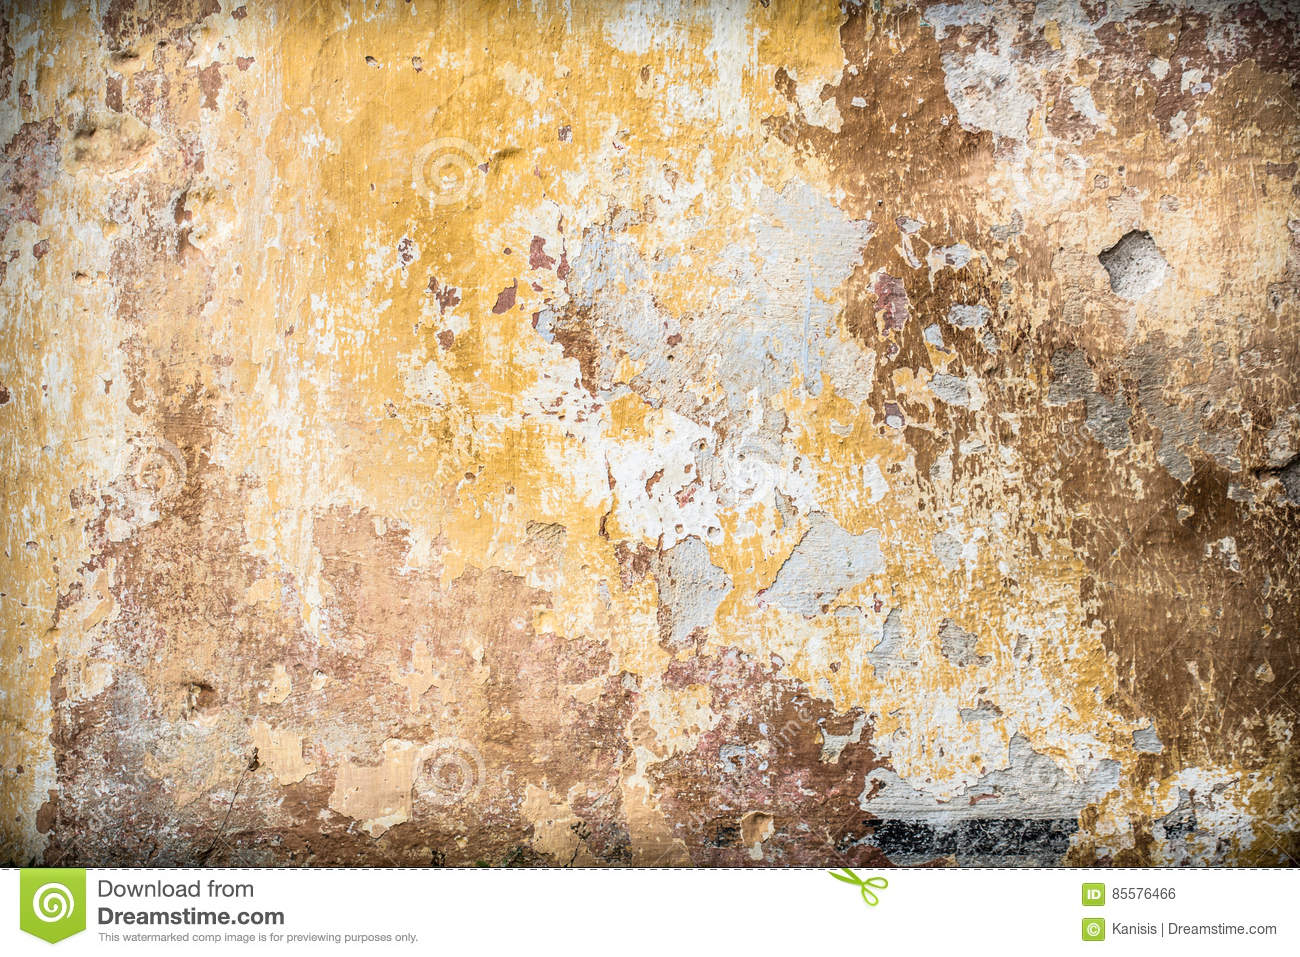 Dreamstime.com & Old Vintage Rustic Wall With Cracked Paint Layers Stock Photo ...